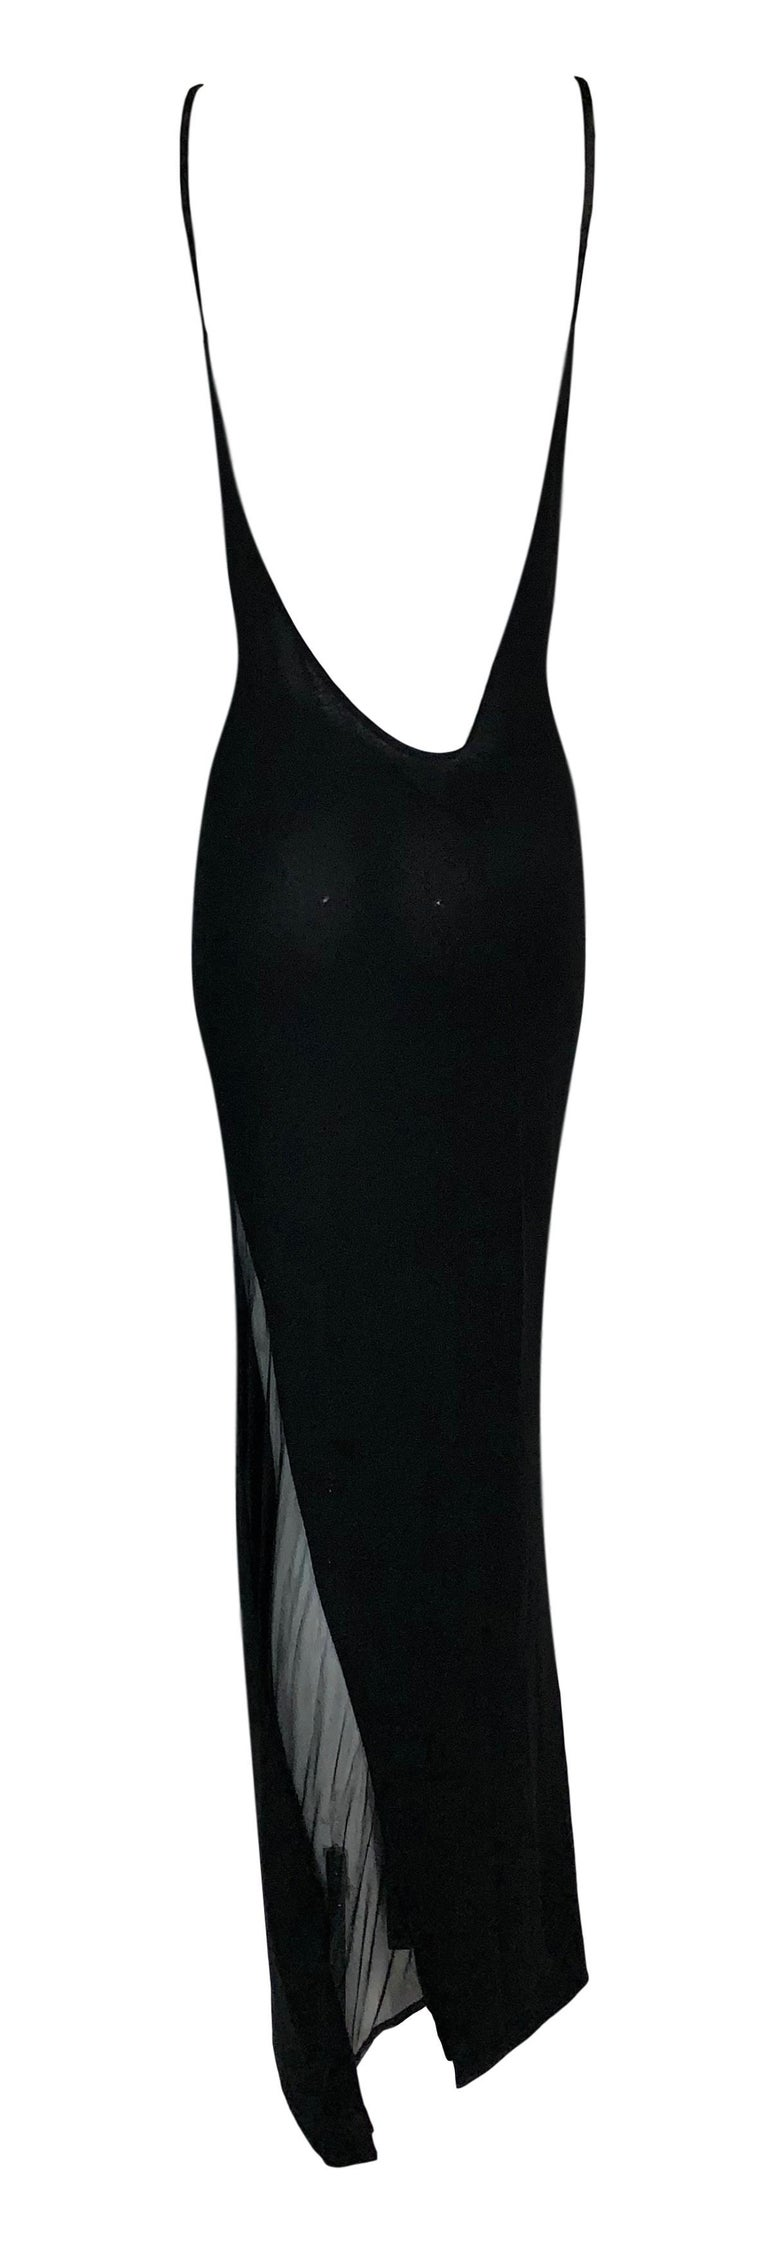 S/S 1998 Gucci by Tom Ford Black Sheer Body Panel Plunging Back Gown Dress In Good Condition For Sale In Yukon, OK